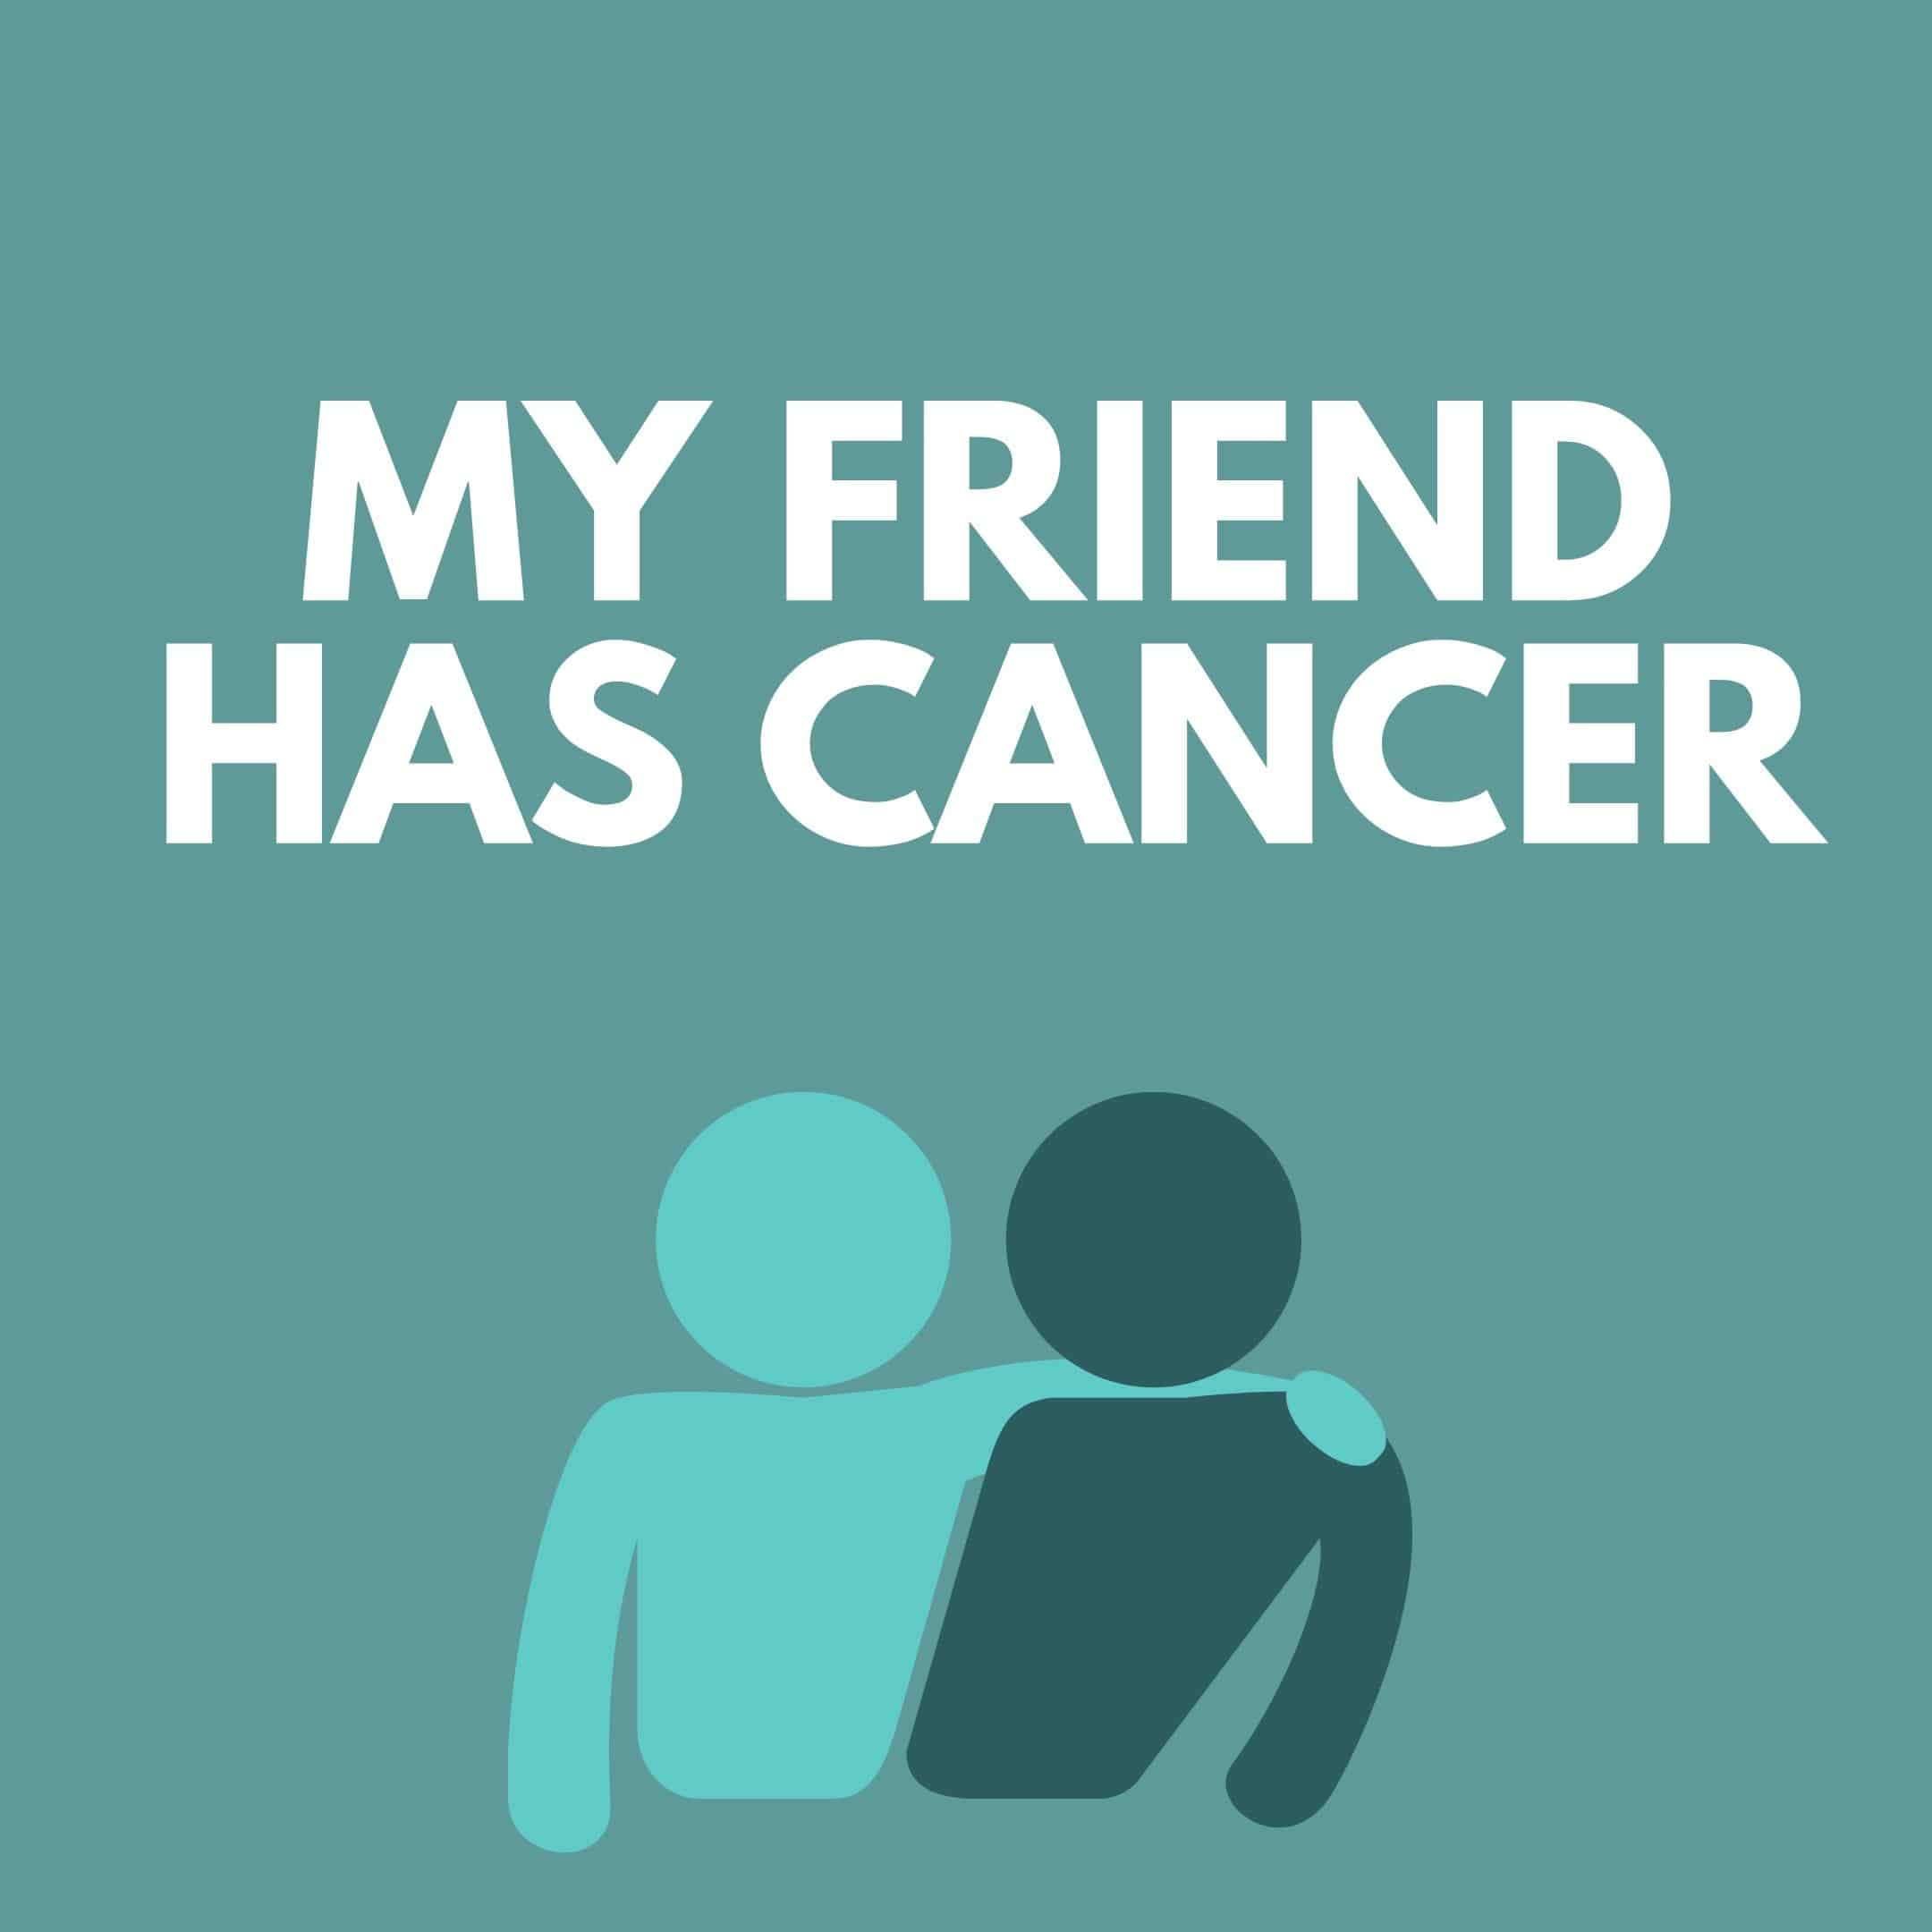 My Friends Cancer